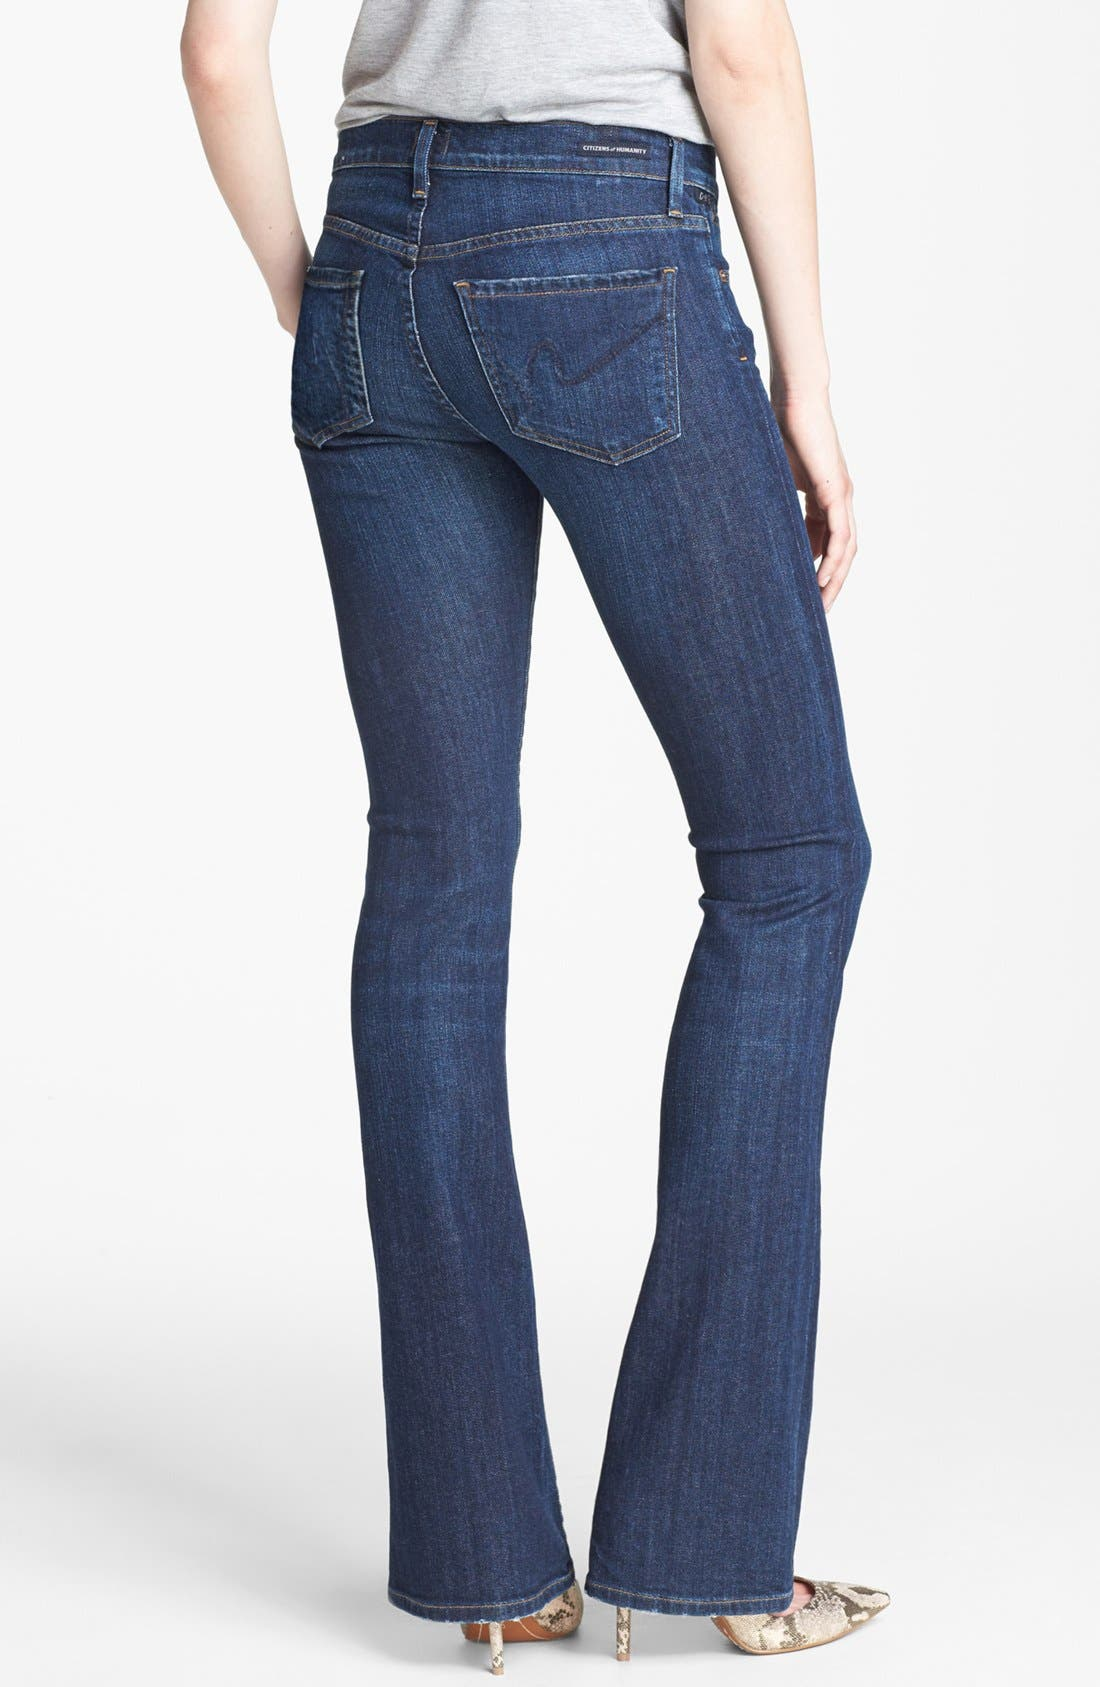 'Emmanuelle' Slim Bootcut Jeans,                             Alternate thumbnail 2, color,                             401